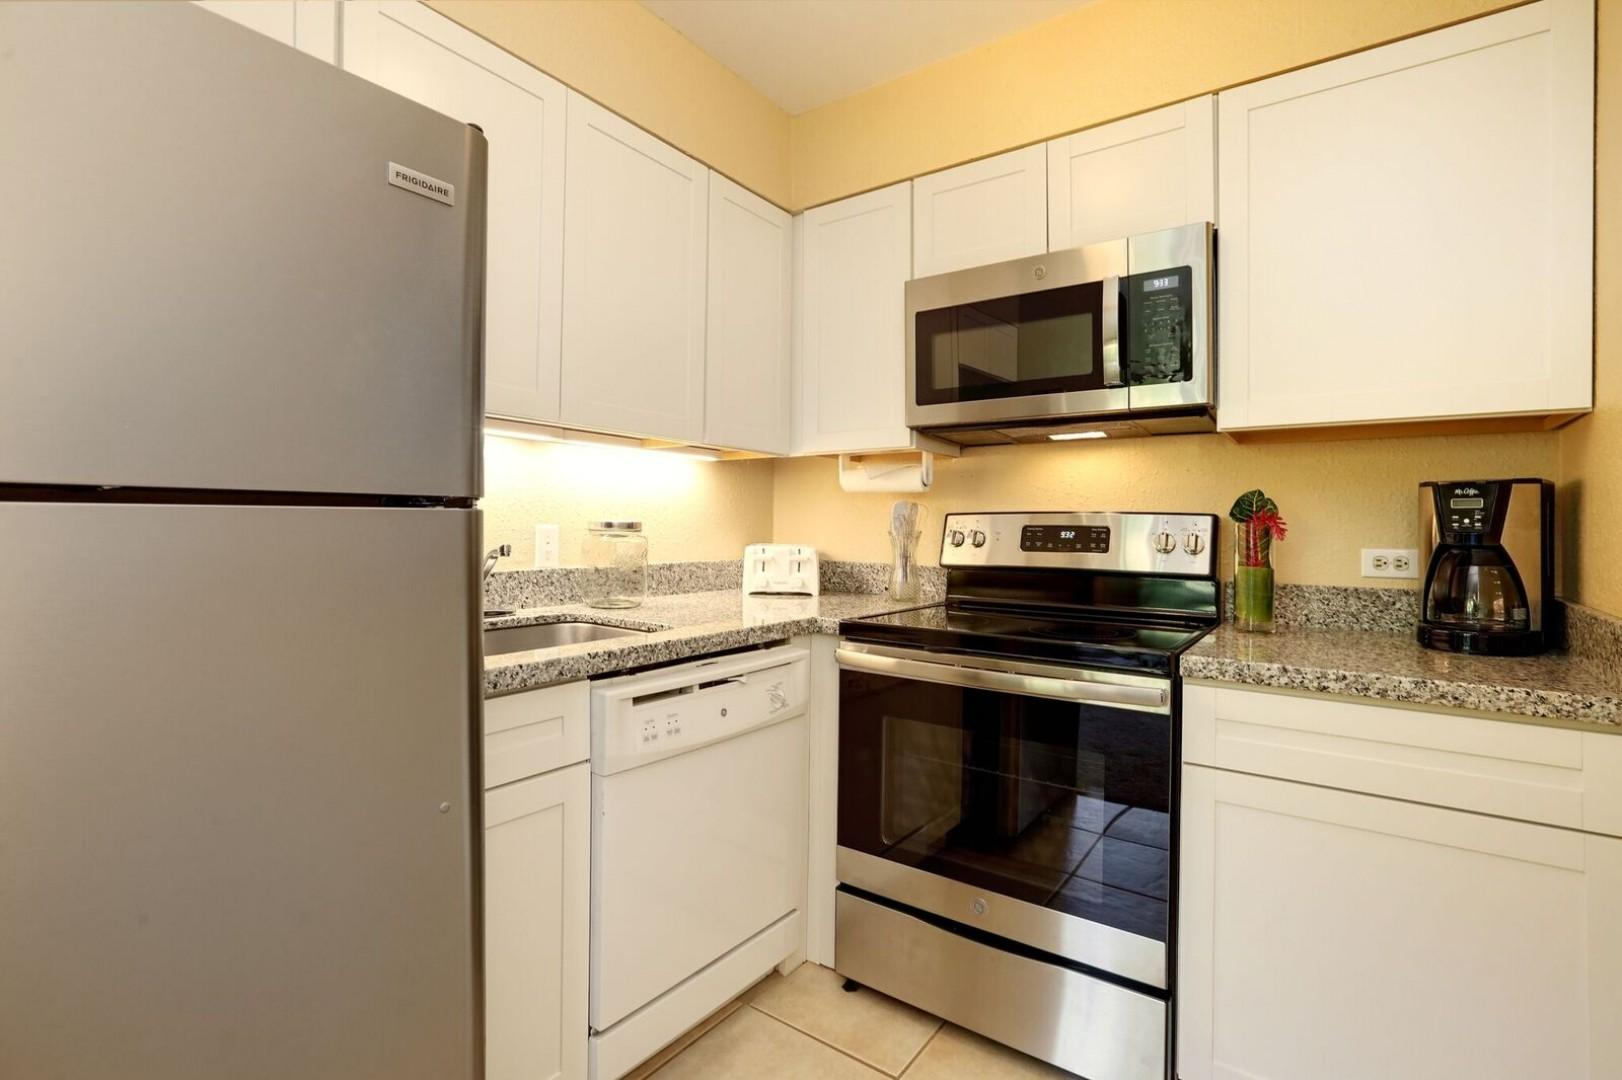 Fresh updated kitchen with stainless steel appliances